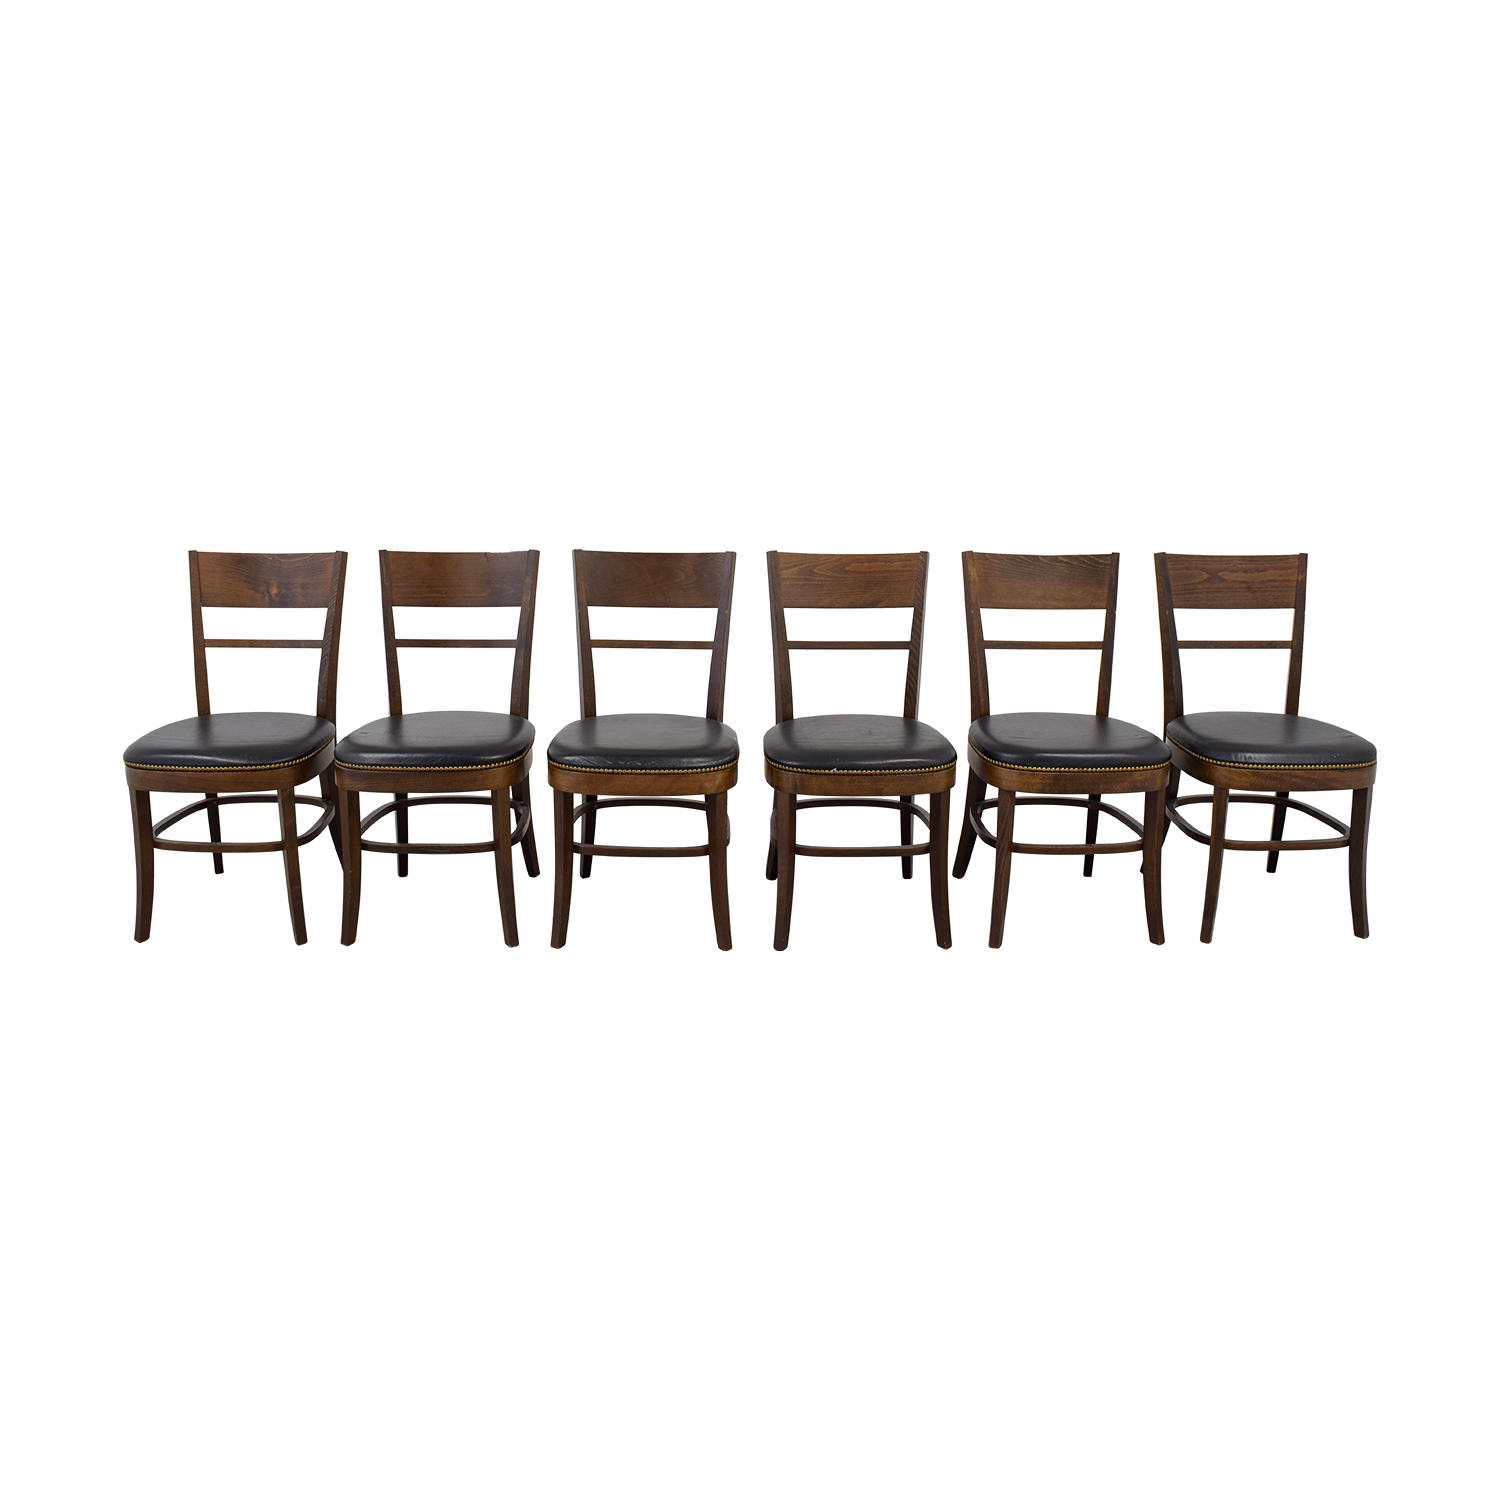 84% OFF   Pottery Barn Pottery Barn Dining Chairs / Chairs